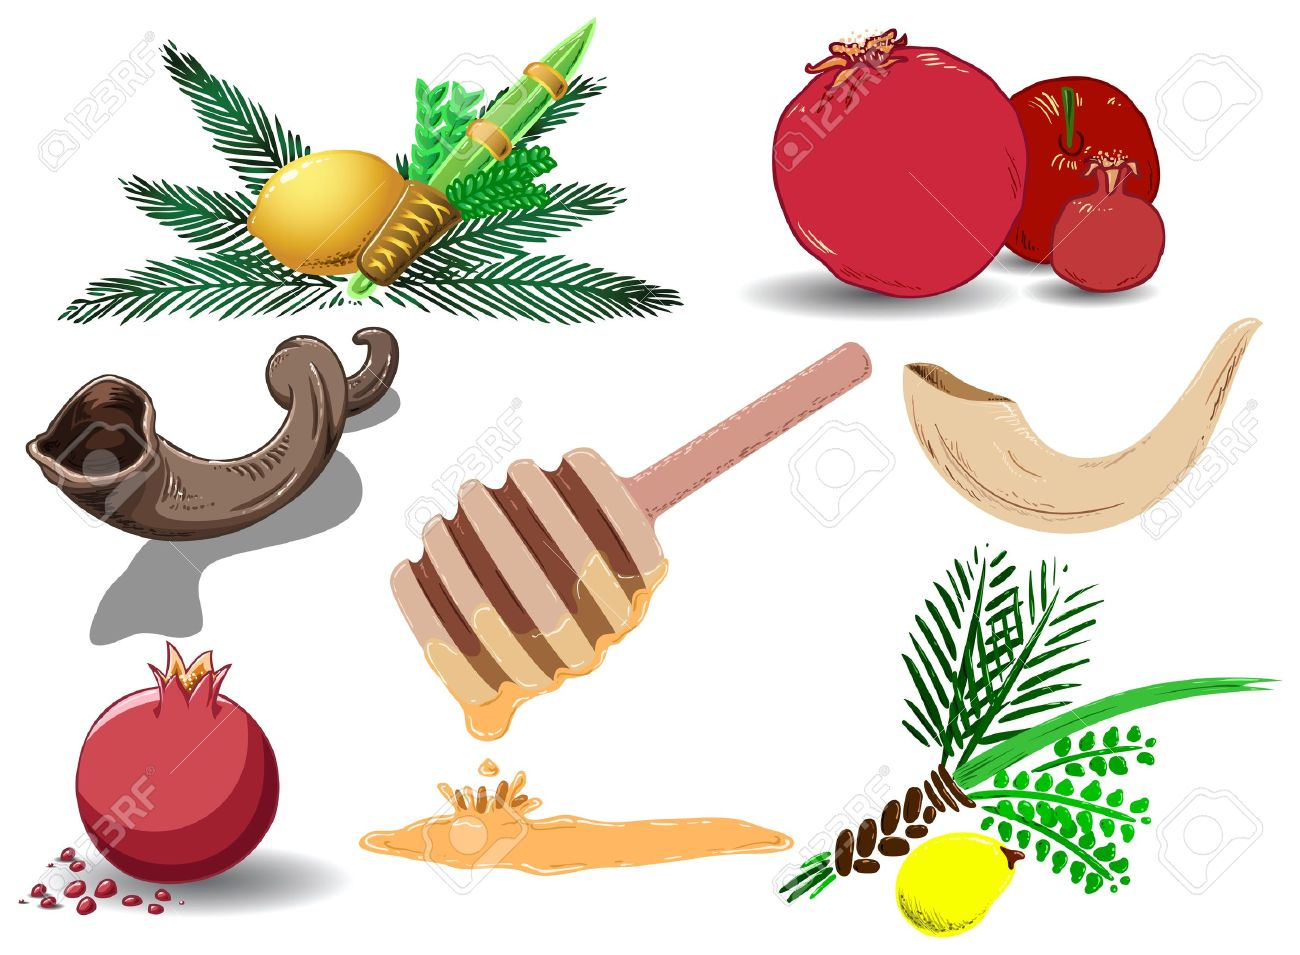 A pack of Vector illustrations of famous Jewish symbols for the Jewish Holidays New Year, Yom Kipur and Sukkot. Stock Vector - 10462539